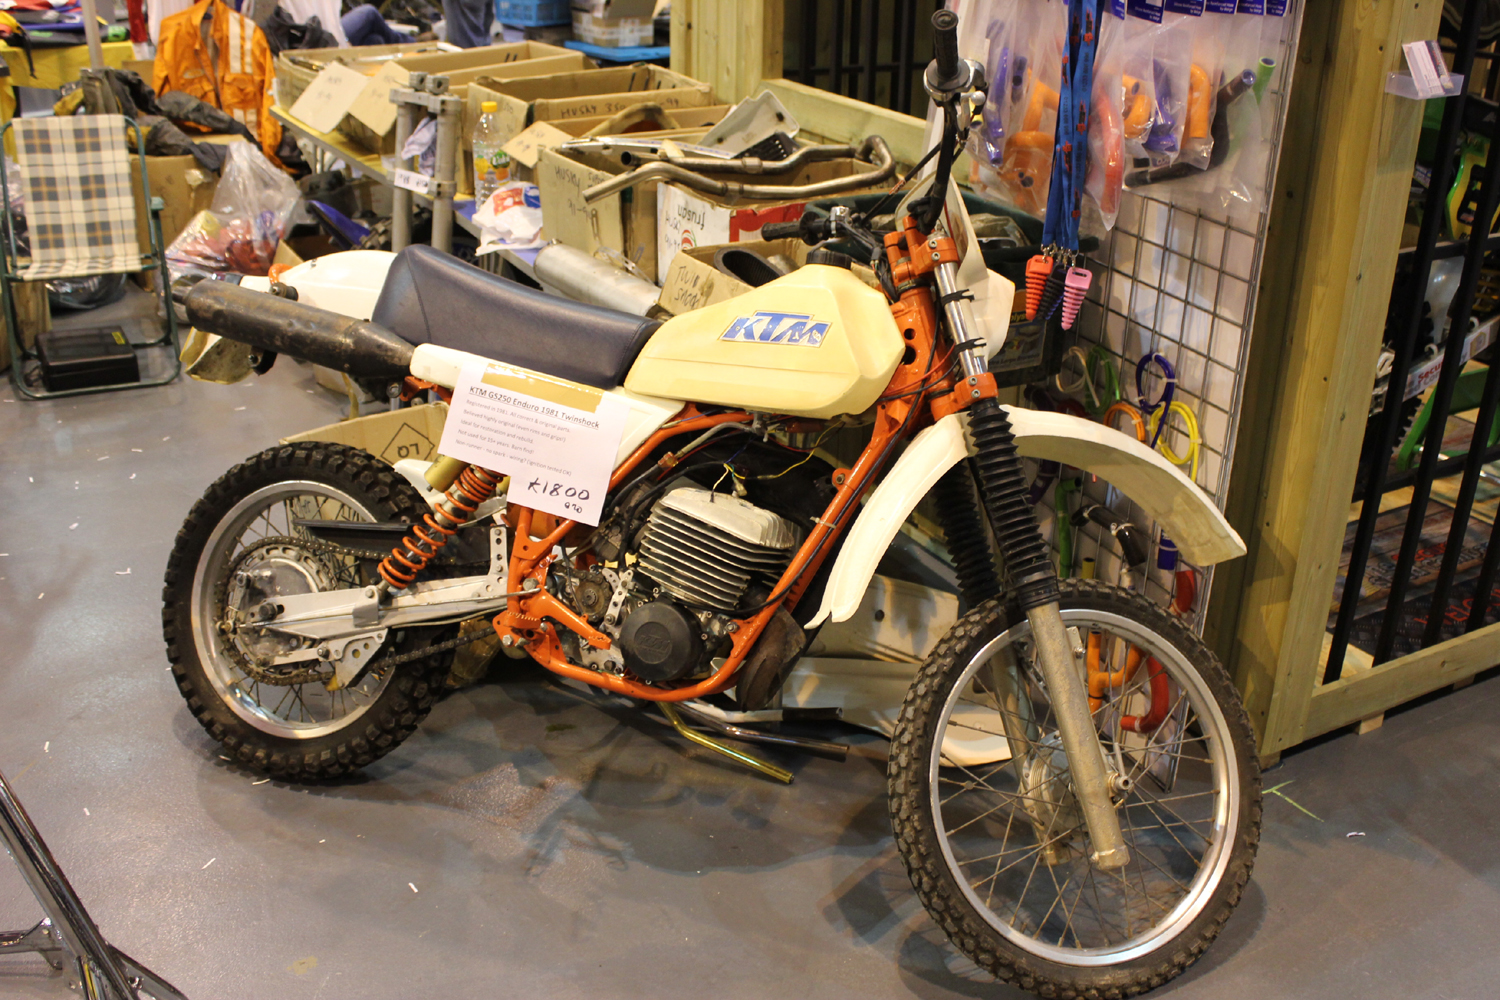 classicdirtbikerider.com-photo by Mr J-2015 Telford classic dirt bike show-1981 KTM GS250 ENDURO FOR SALE £1800